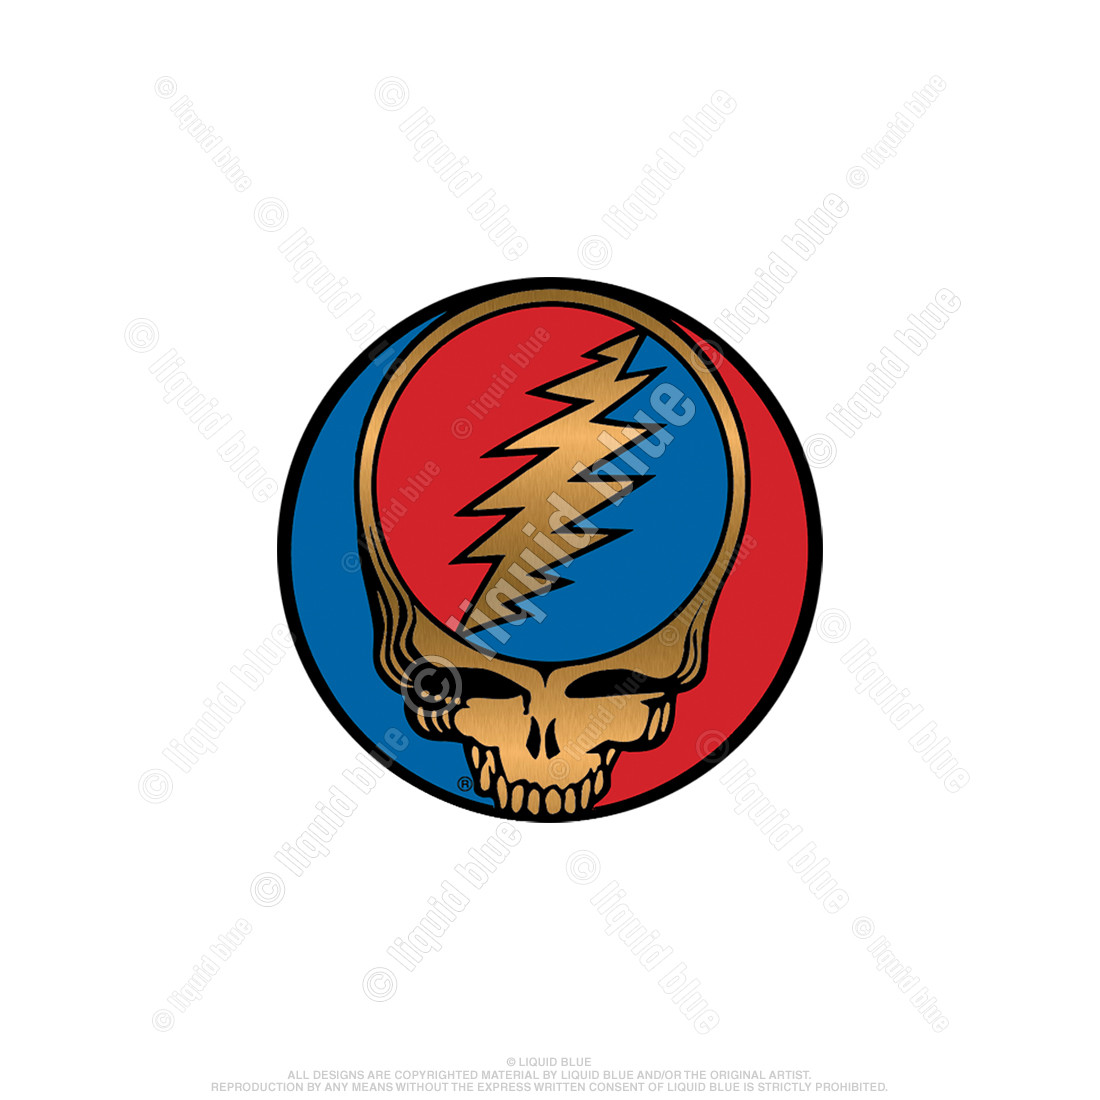 Steal Your Face 1.5 Inch Metallic Sticker